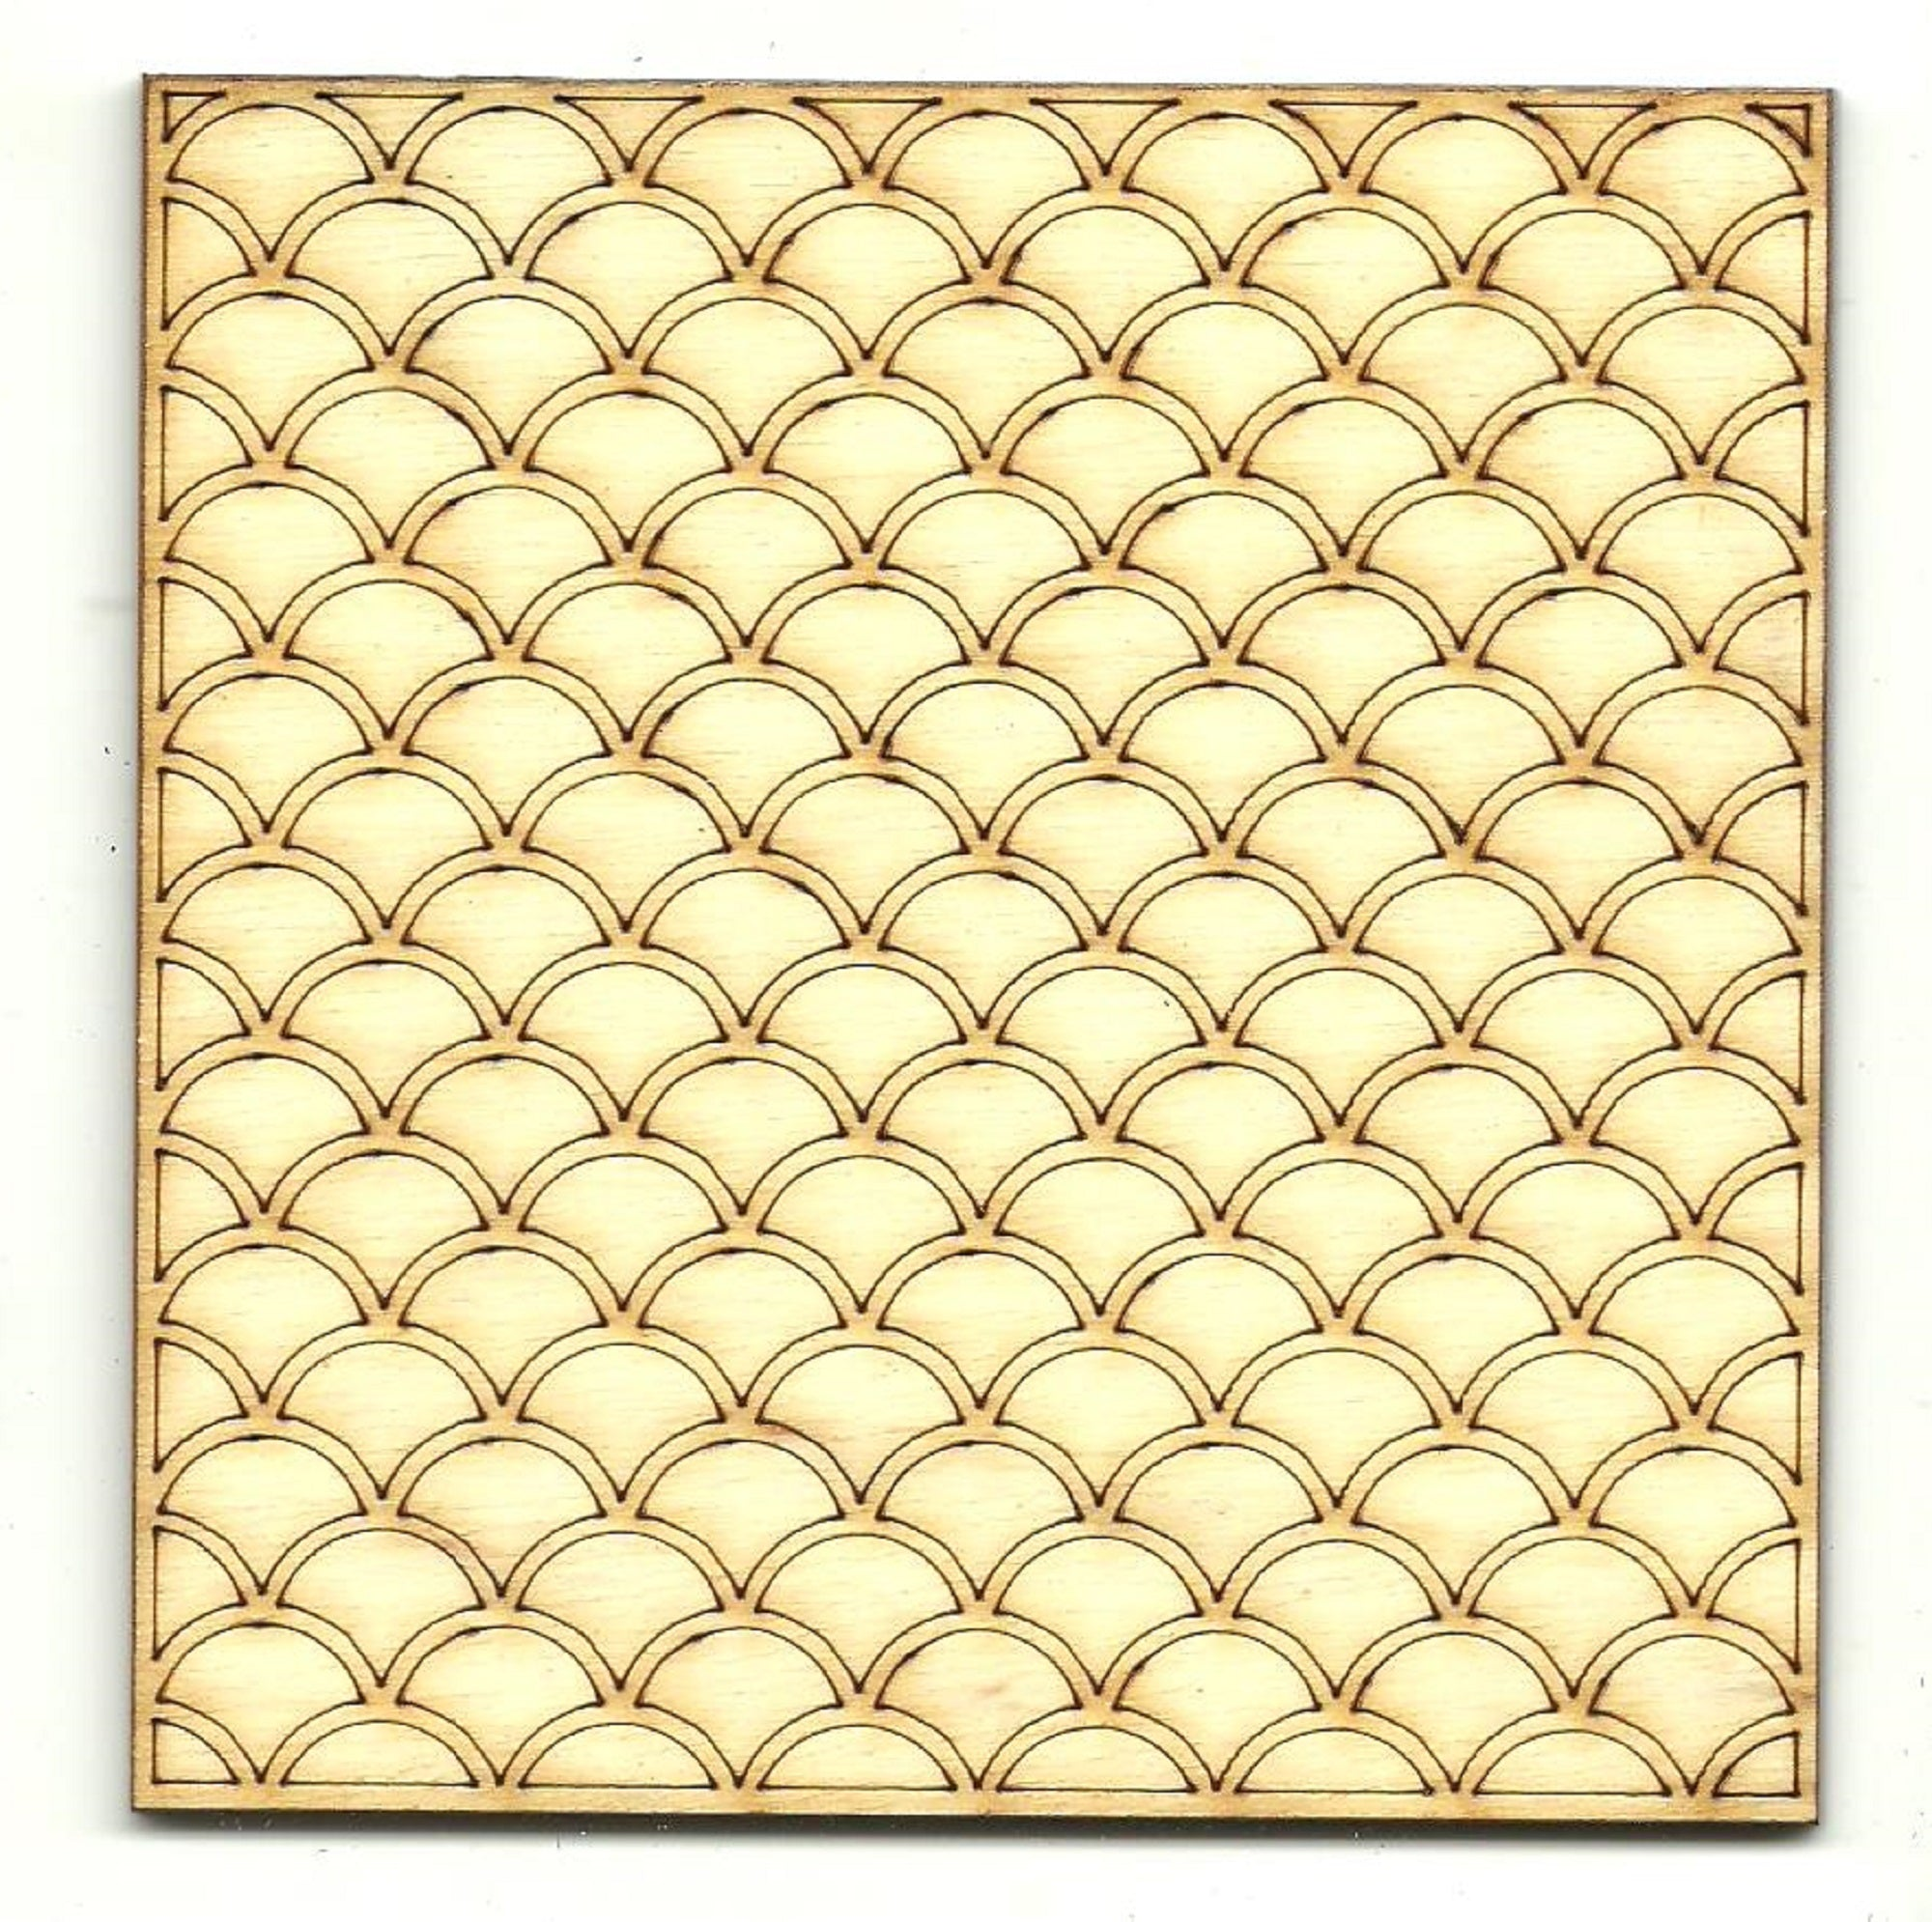 Panel Design - Laser Cut Wood Shape DSN120